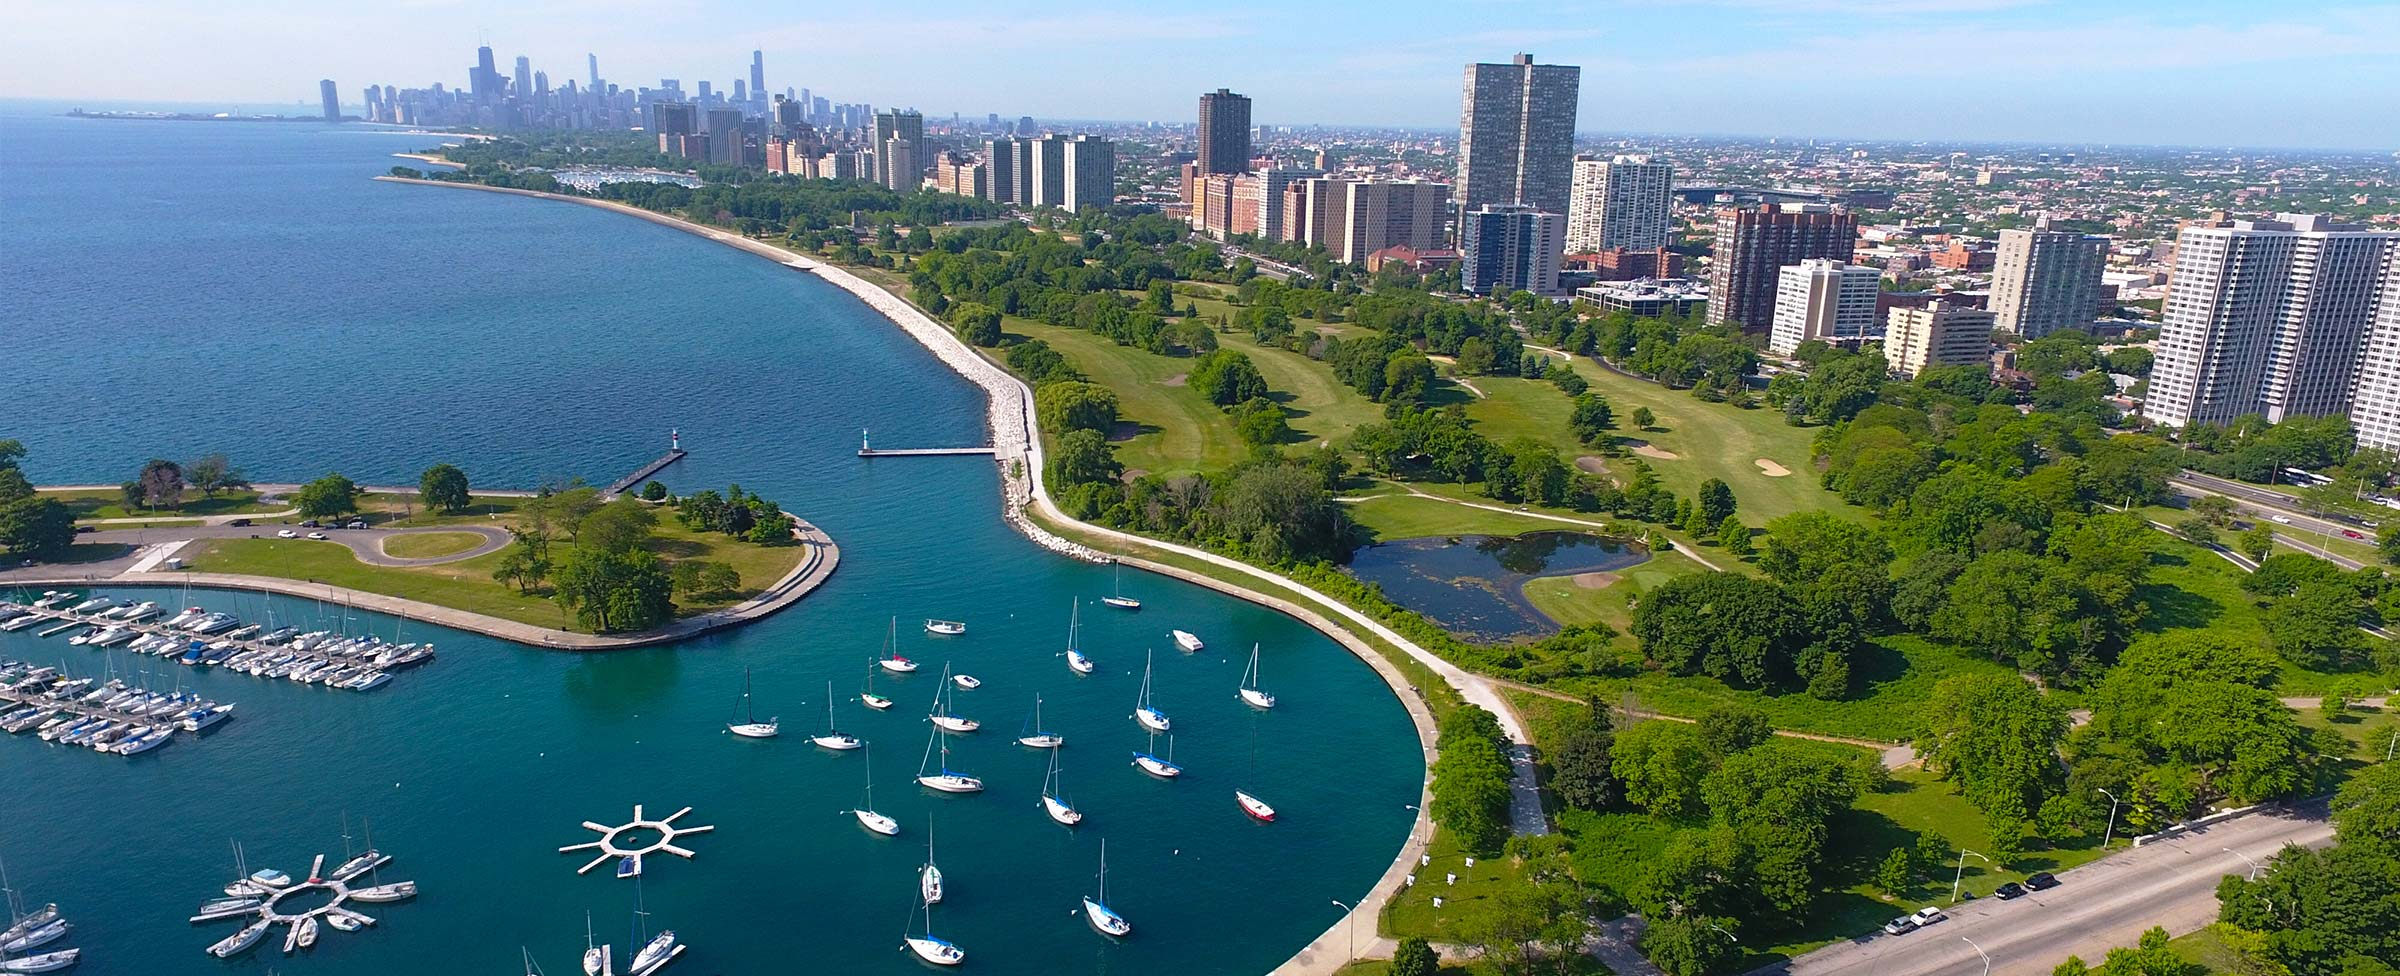 Overlooking Montrose Harbor and lake Michigan in Buena Park